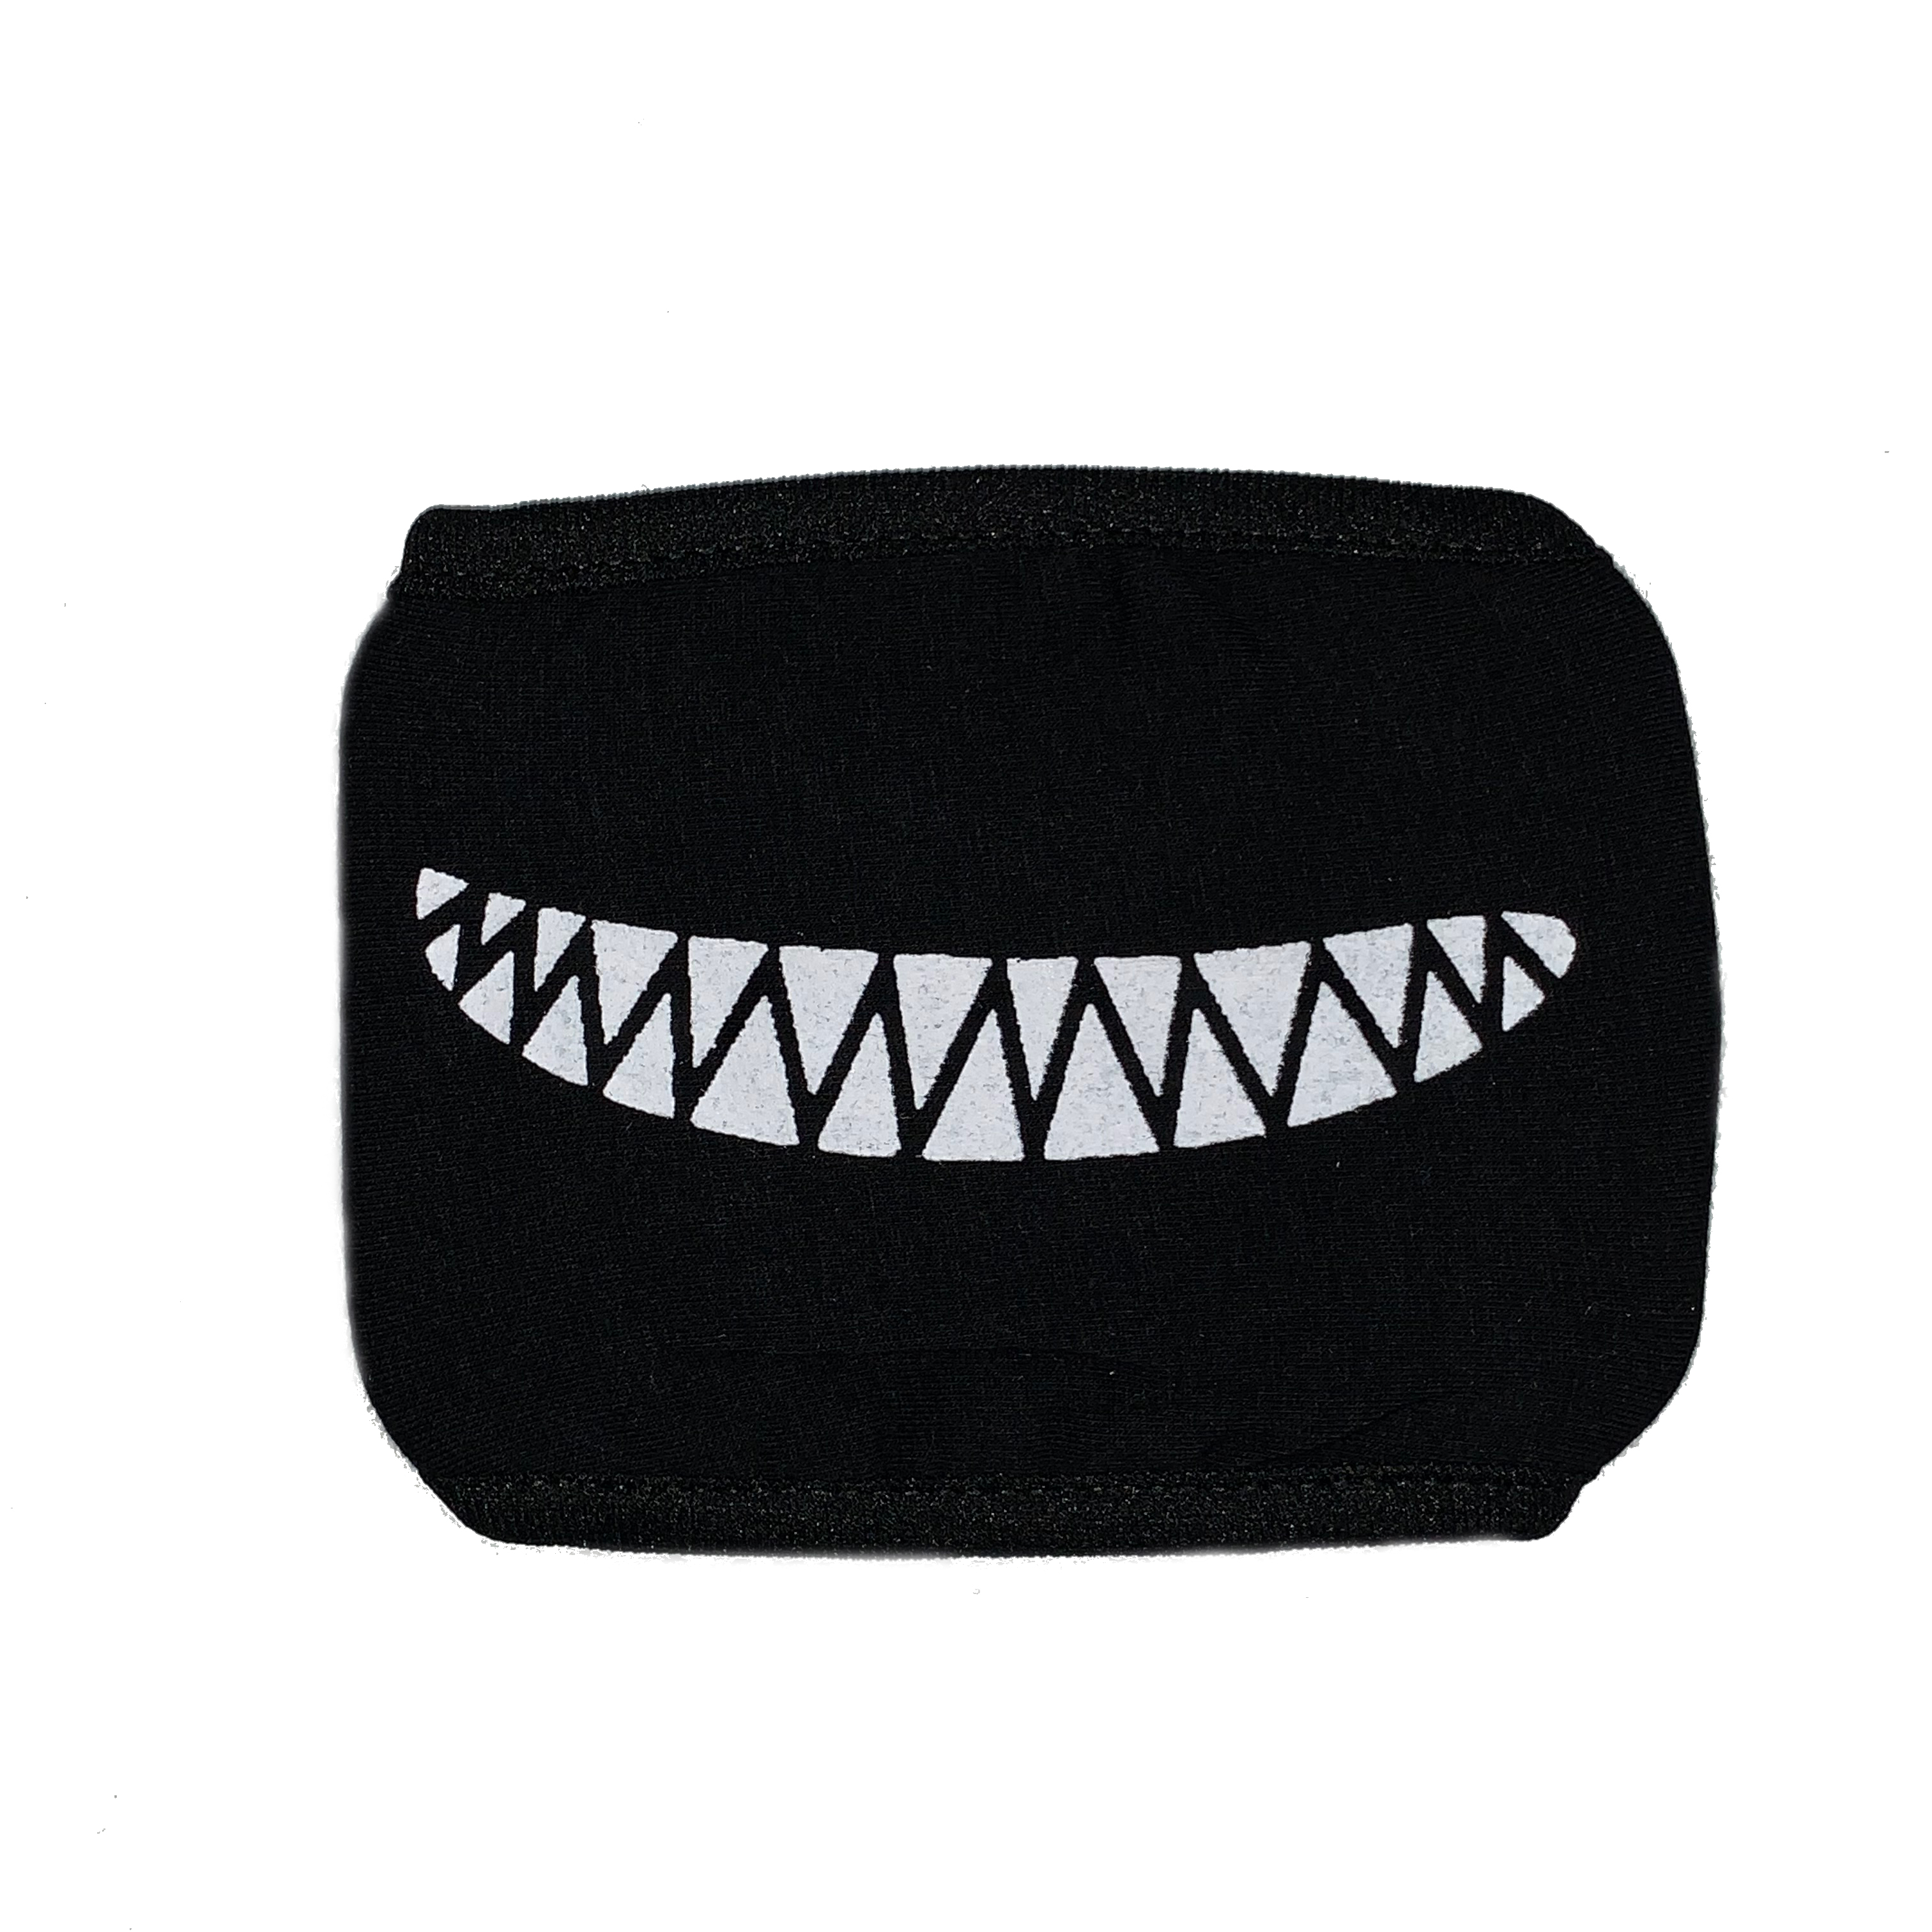 Cosplay Mask Face Mouth Mask Anime Smile Black One Size Fits Most